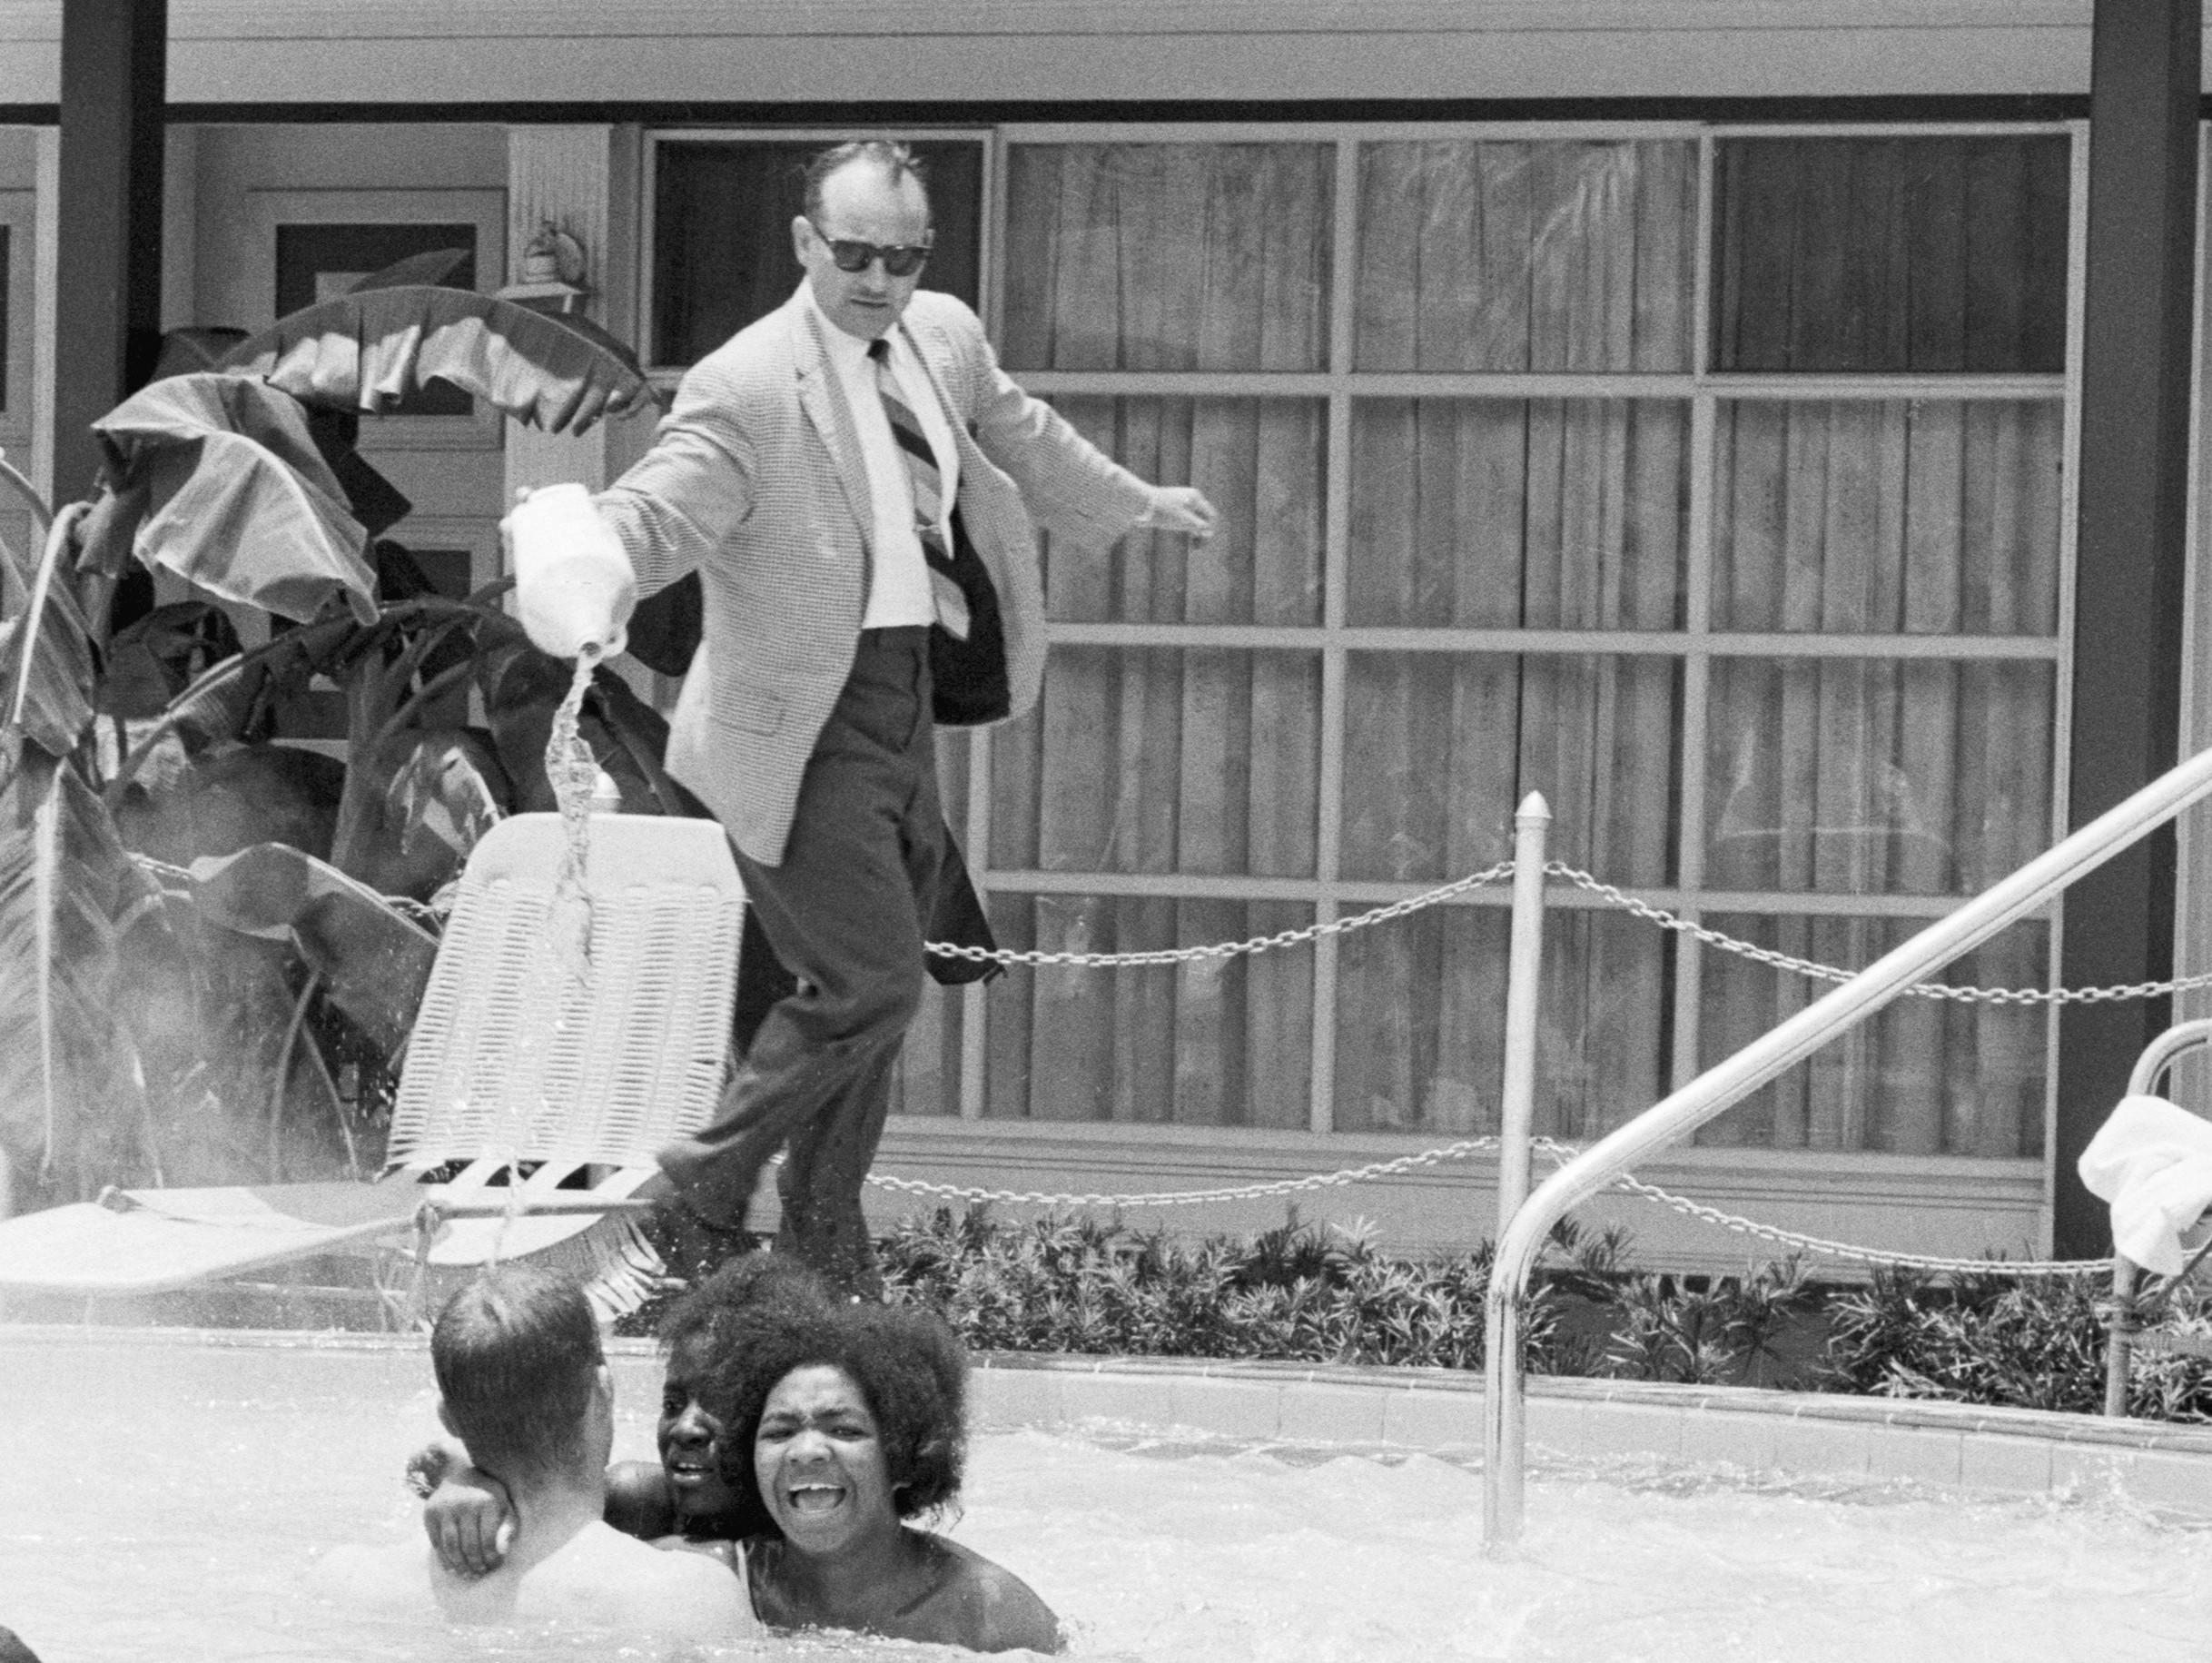 Remembering A Civil Rights Swim In 39 It Was A Milestone 39 Ncpr News